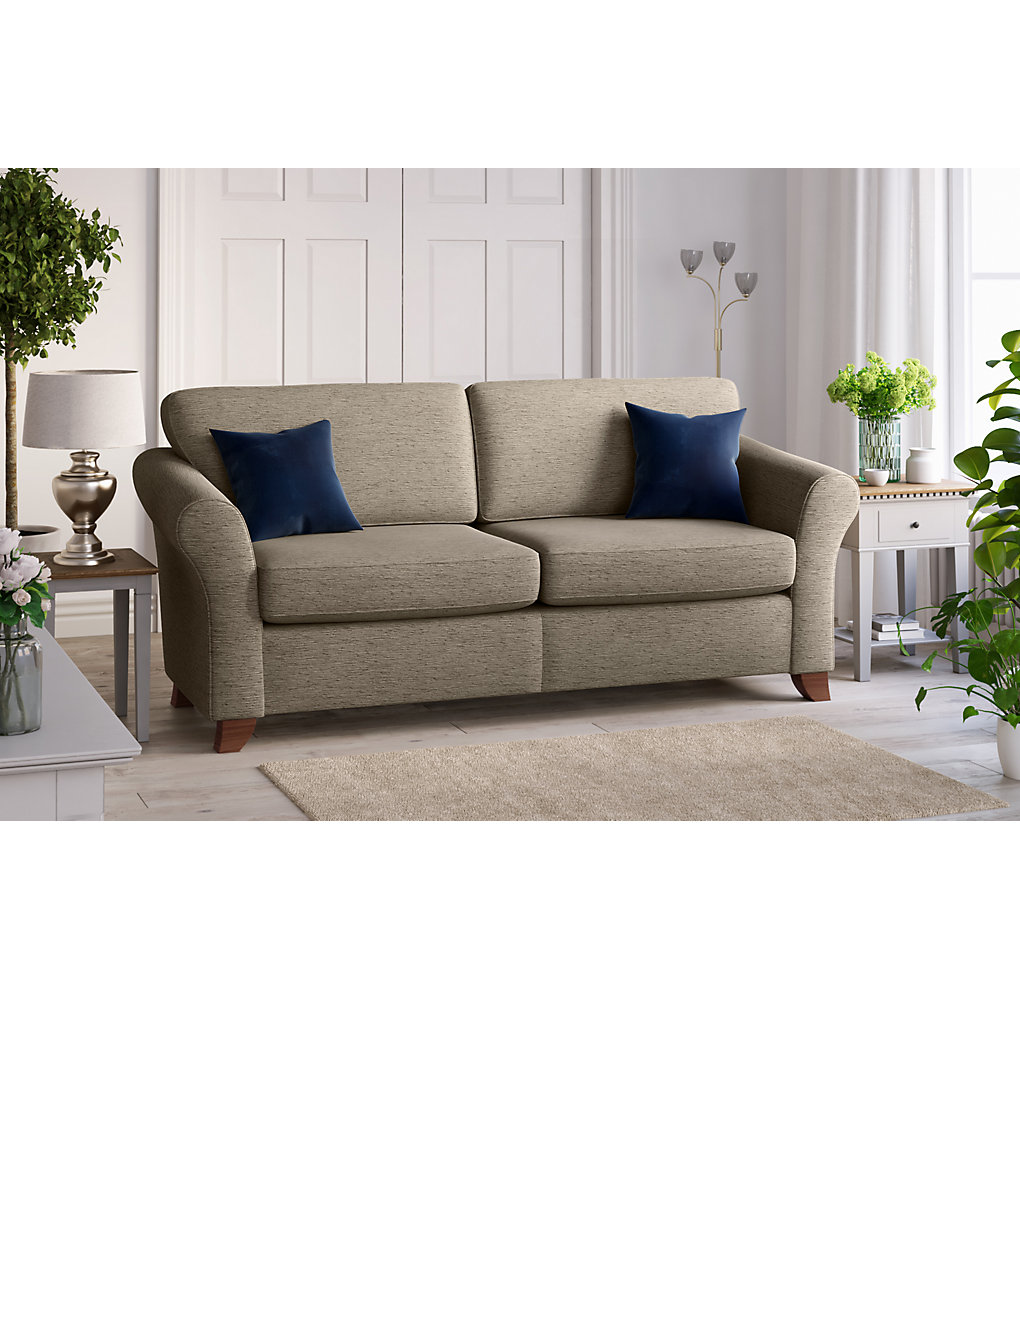 Large sofa bed large sofa bed eo furniture thesofa Large couch bed